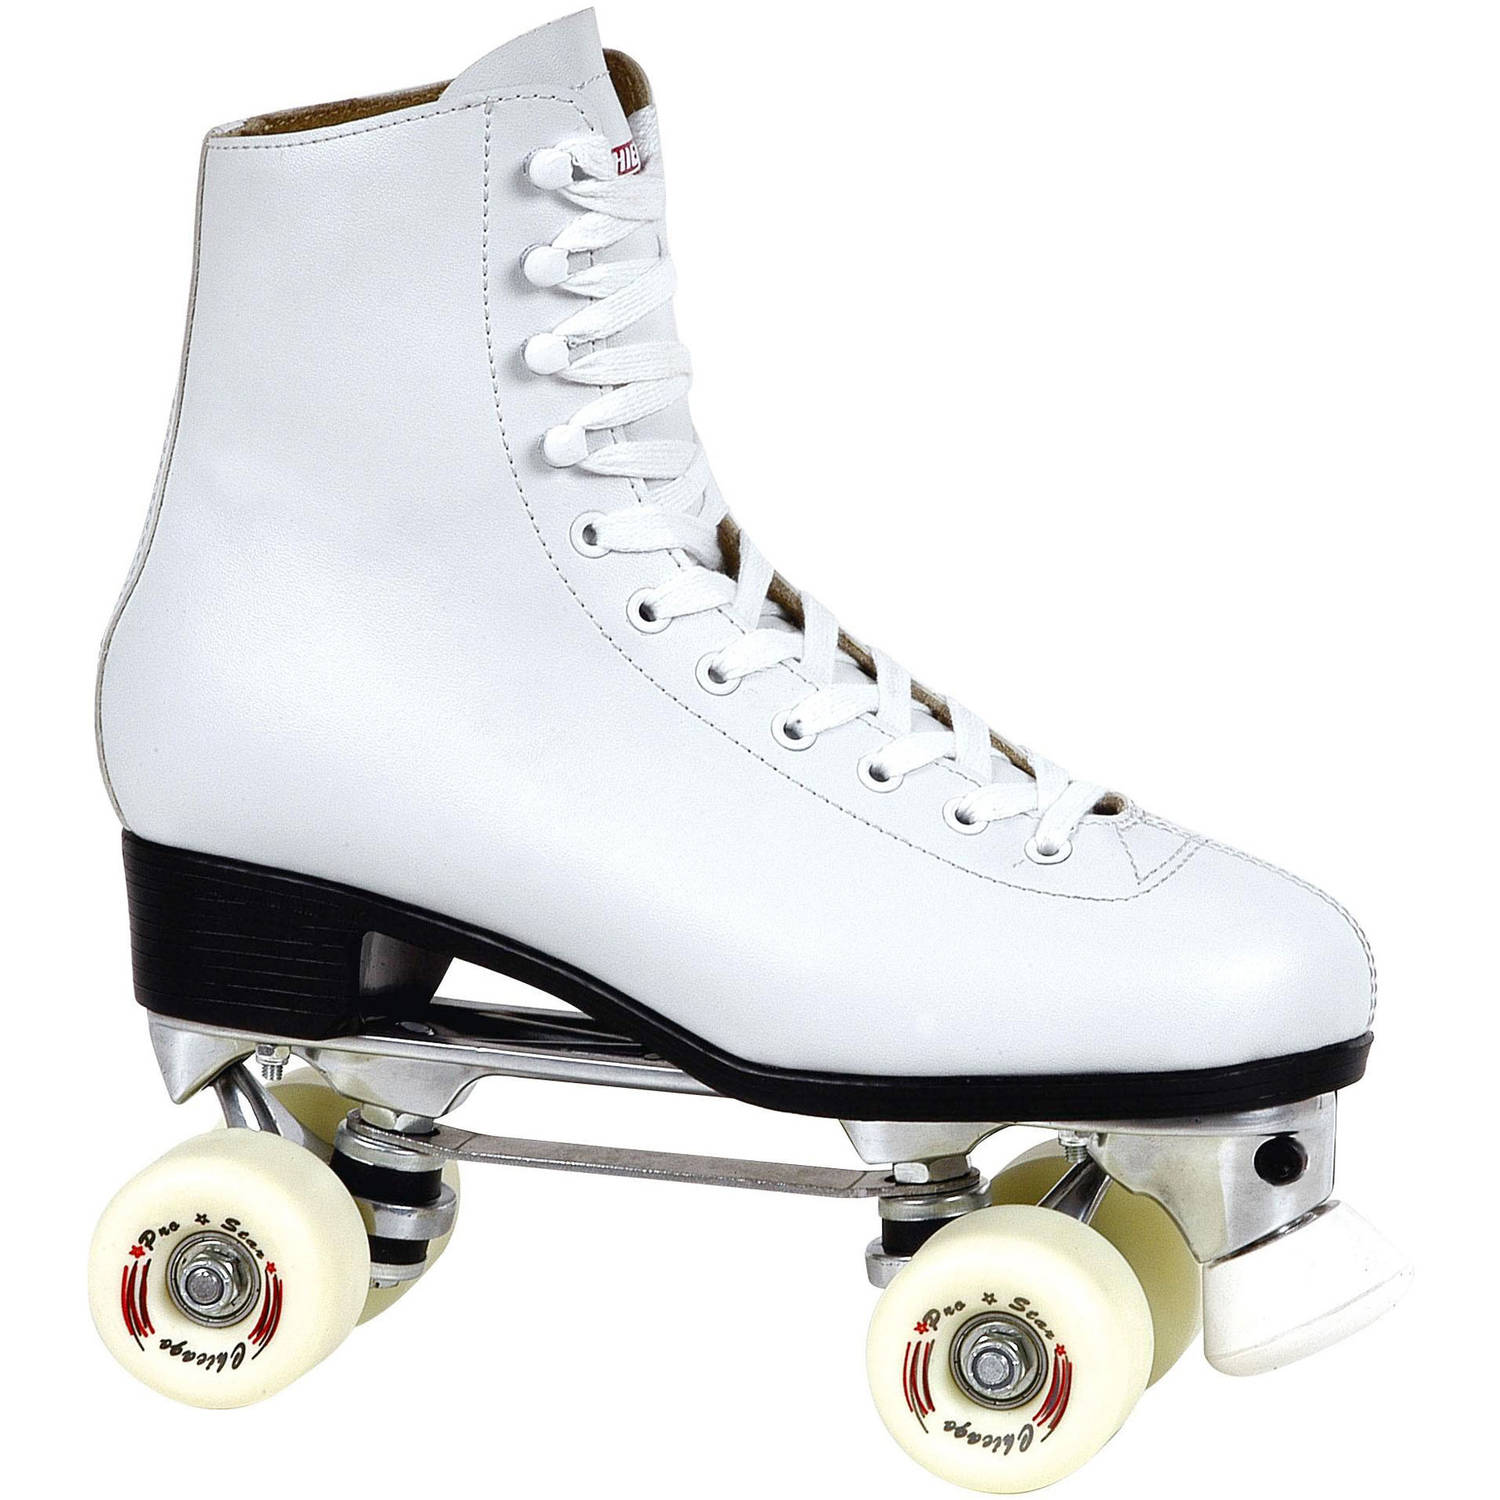 Chicago Ladies' Leather Rink Skate